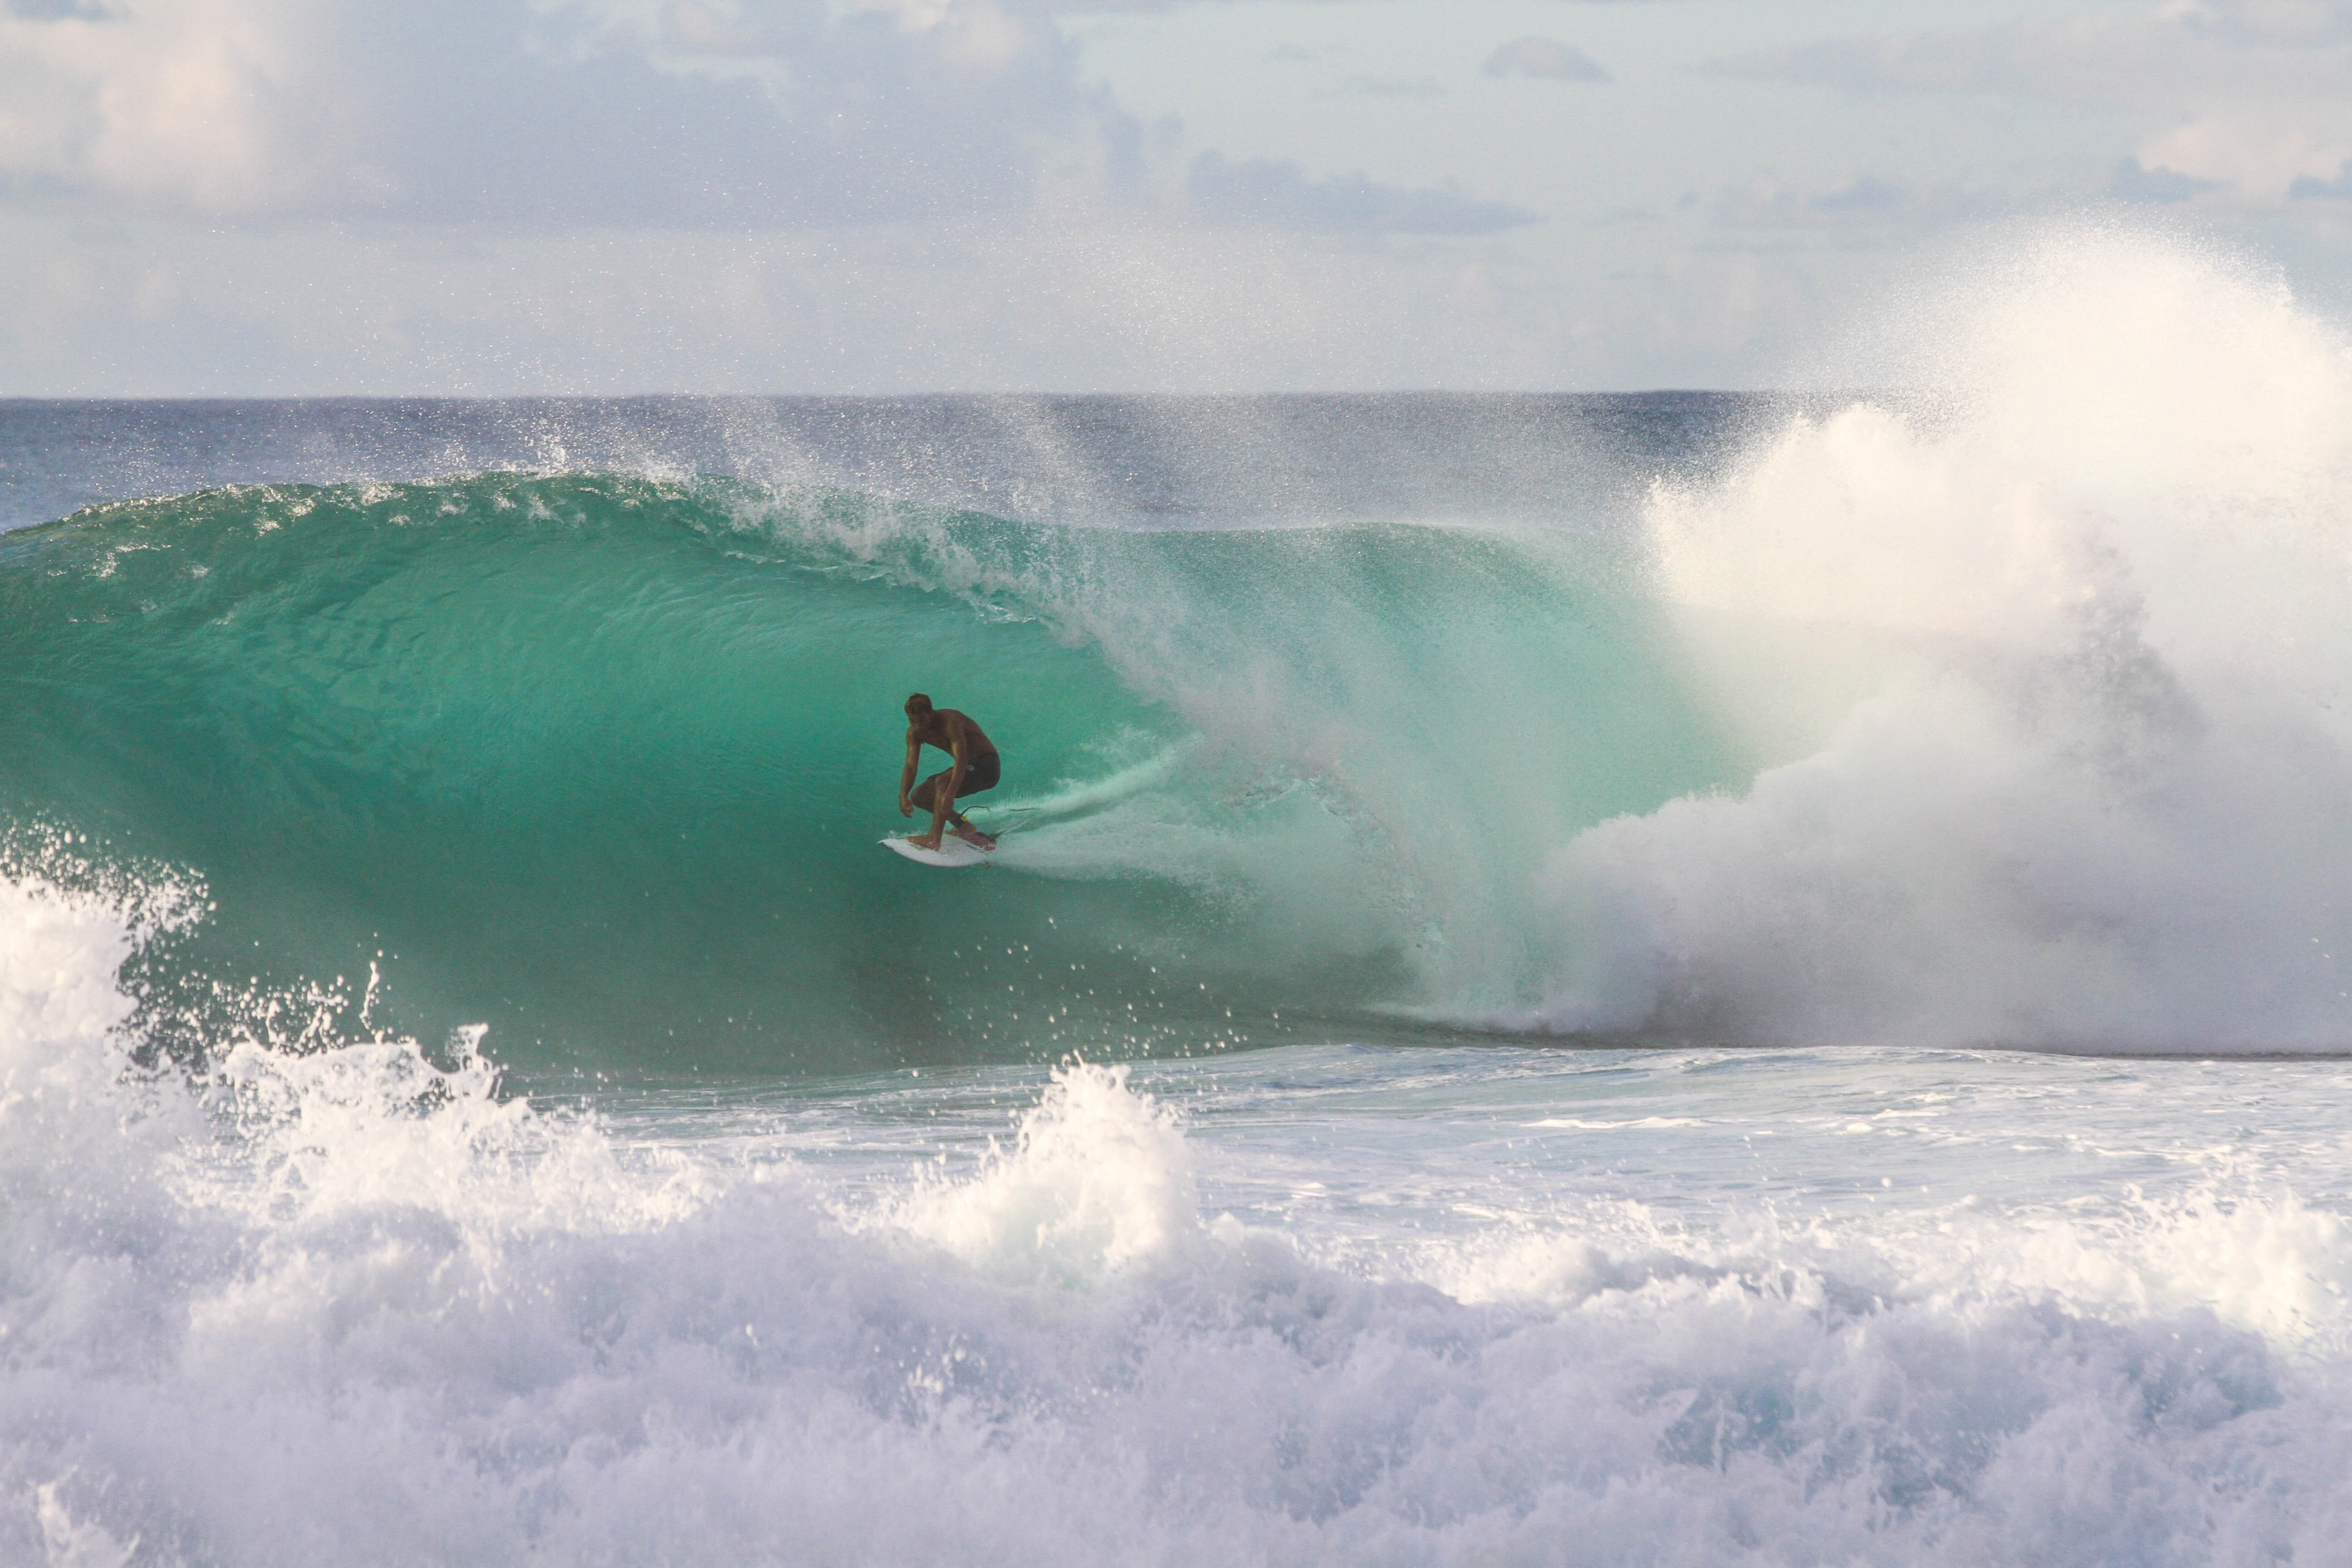 A surfer riding a large wave in the foaming sea at North Shore